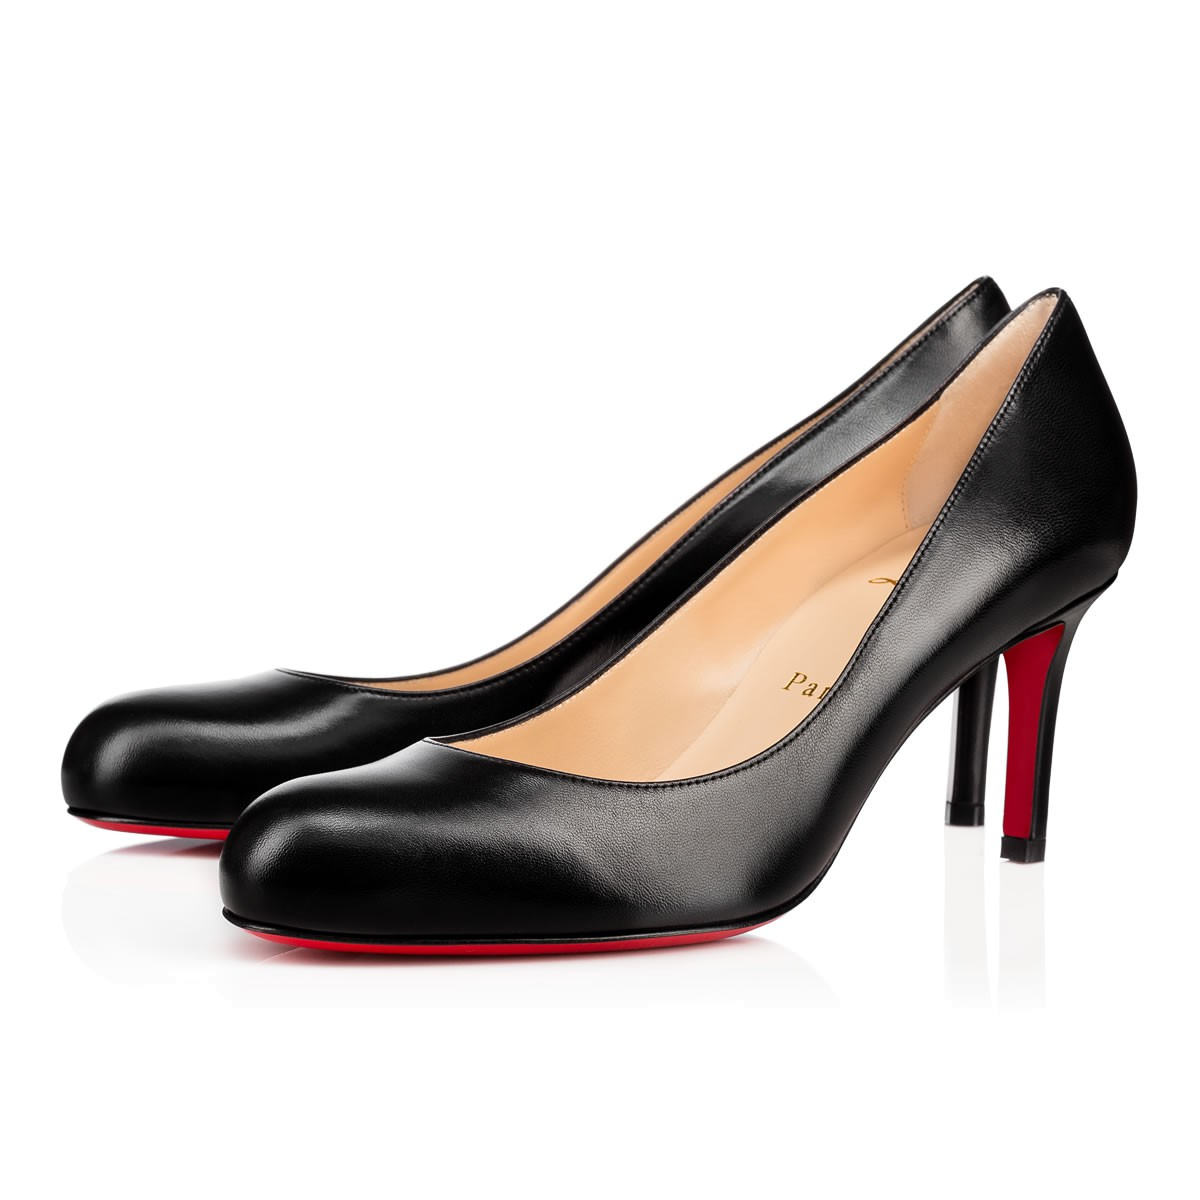 mode designer dbe4e c1975 Simple pump 70 nappa shiny nappa 70 Black Leather - Souliers Femme -  Christian Louboutin